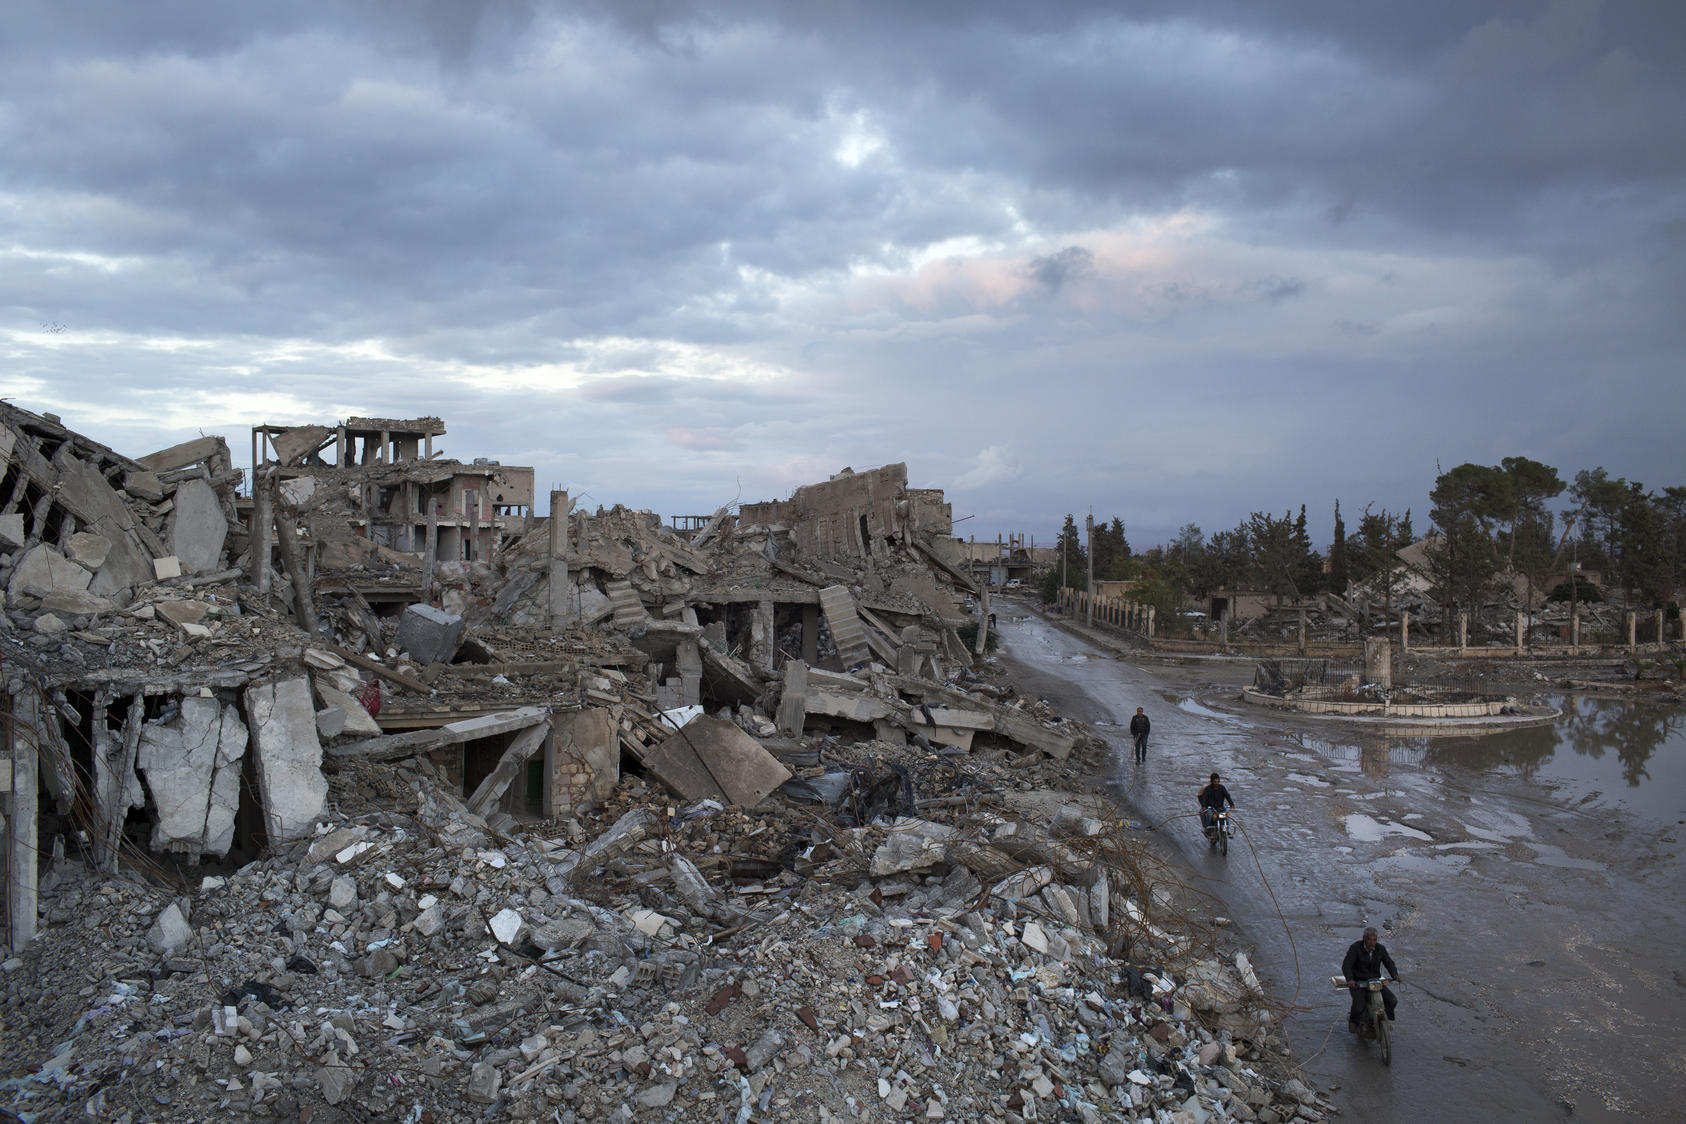 Widespread destruction in Kobani, Syria, months after coalition airstrikes and Kurdish fighters repelled an invasion by the Islamic State group, Oct. 27, 2015. The recent Turkish intervention in northern Syria conjured for many Kurds memories of broken vows by Western powers dating back to World War I, when they were promised, then denied, their own state.